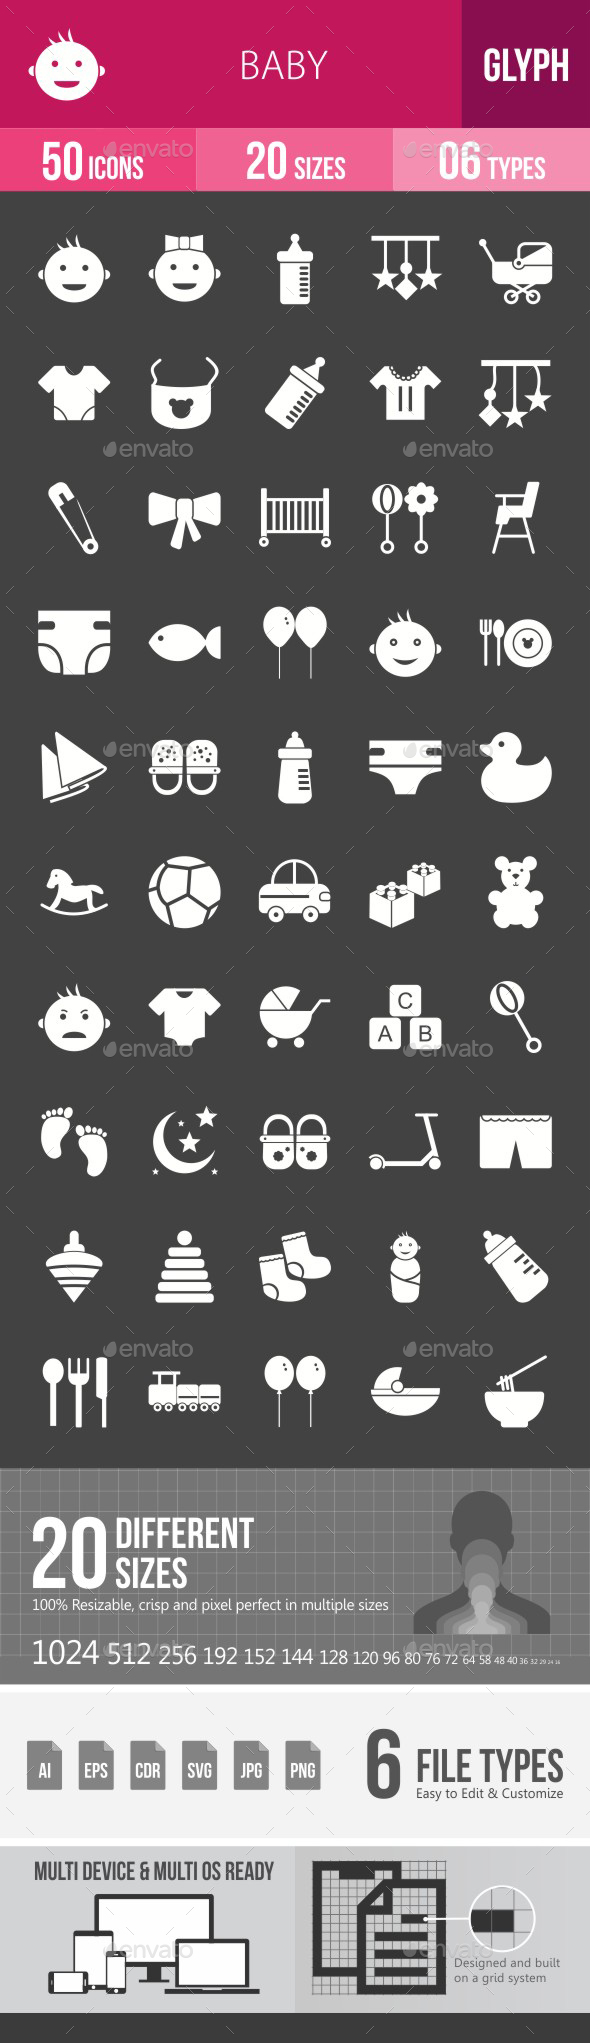 Baby Glyph Inverted Icons - Icons